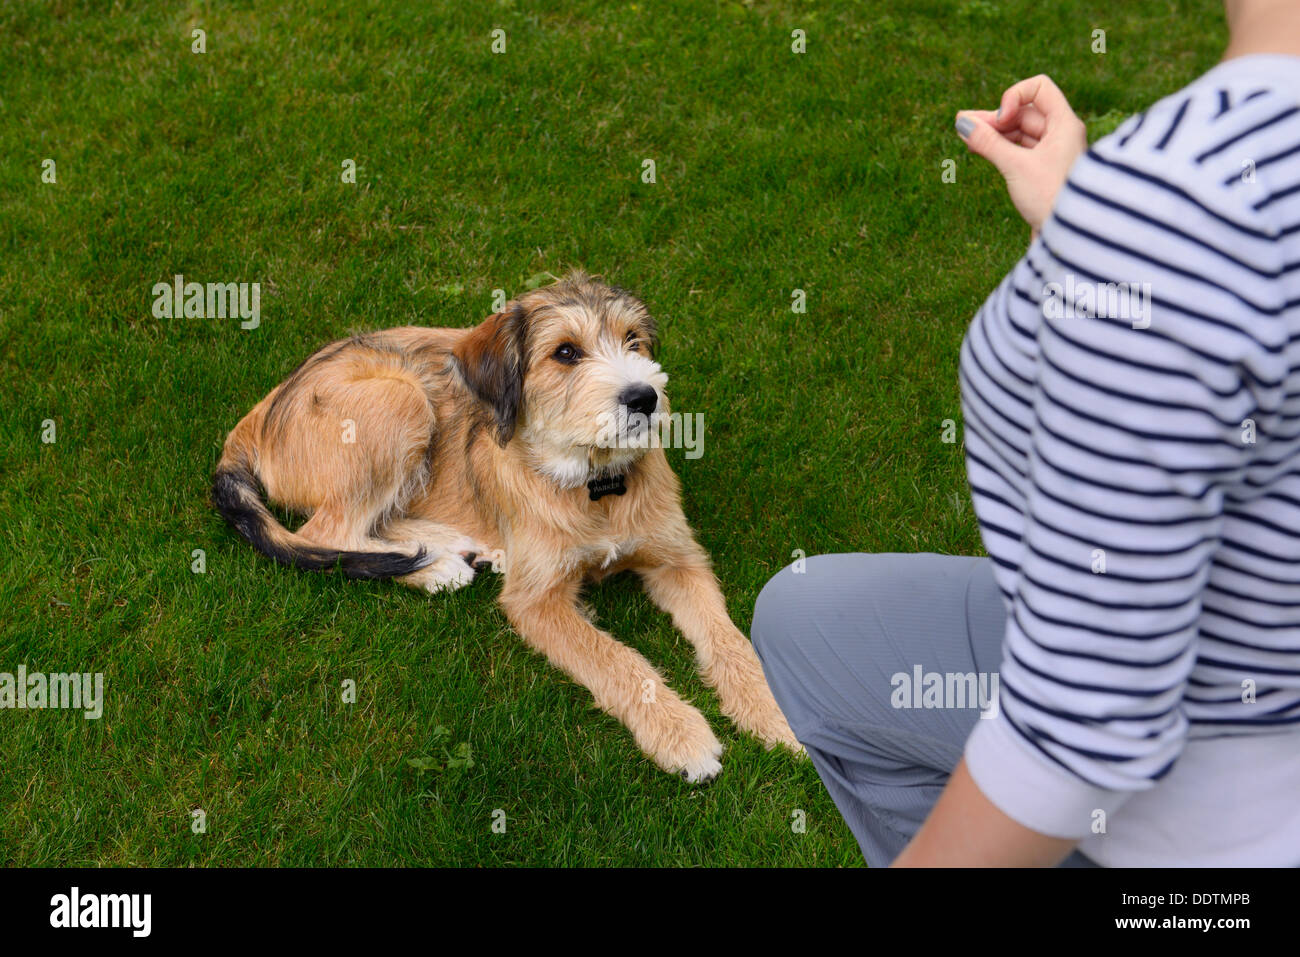 Young puppy being trained by woman to lie down on lawn grass - Stock Image